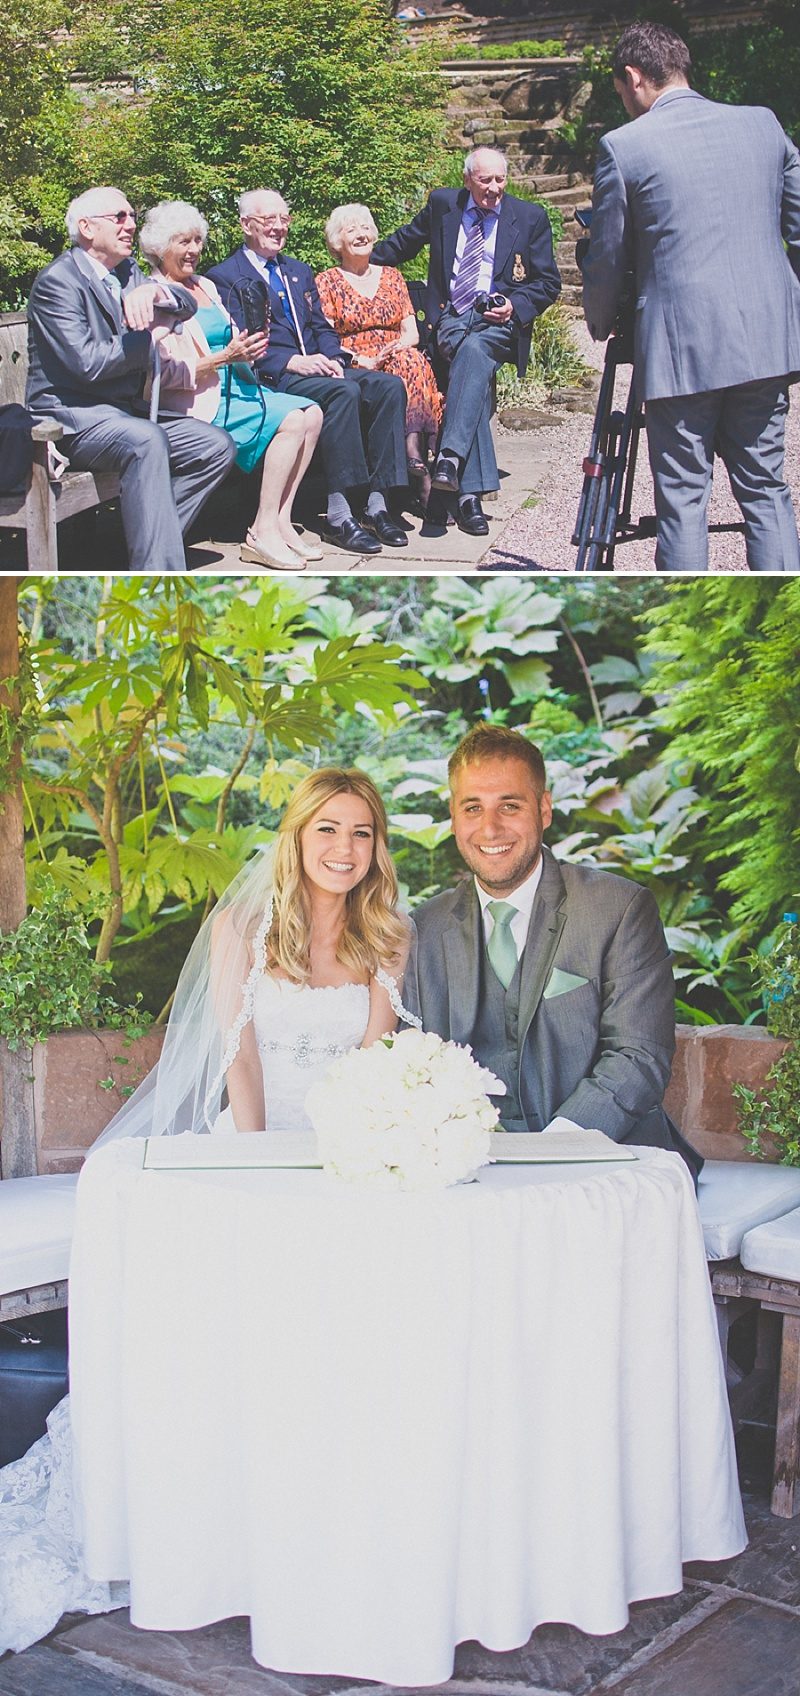 An Elegant White Themed Wedding At The Ness Botanic Gardens With Bride In Champagne From Blue By Enzoani With Aldo Corinne Shoes Images By Rivington Photography 0023 If You Could Bottle That Feeling.